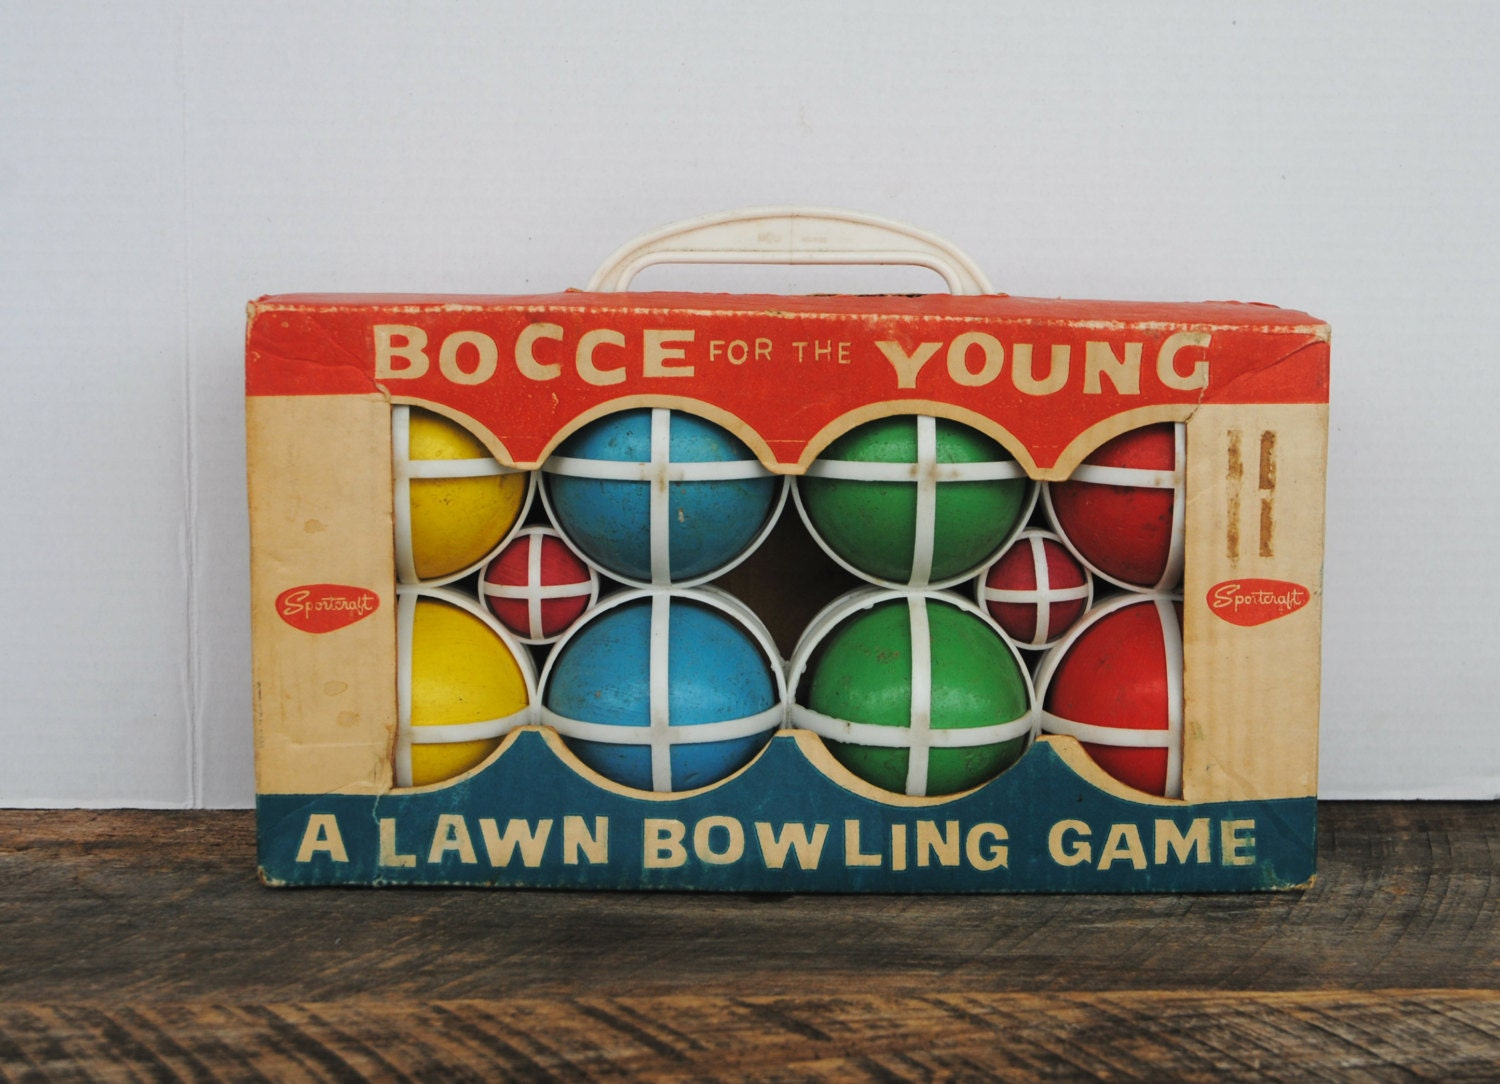 Bocce Ball Lawn Bowling : Vintage Bocce For the Young Lawn Bowling Game by 12108VintageLane